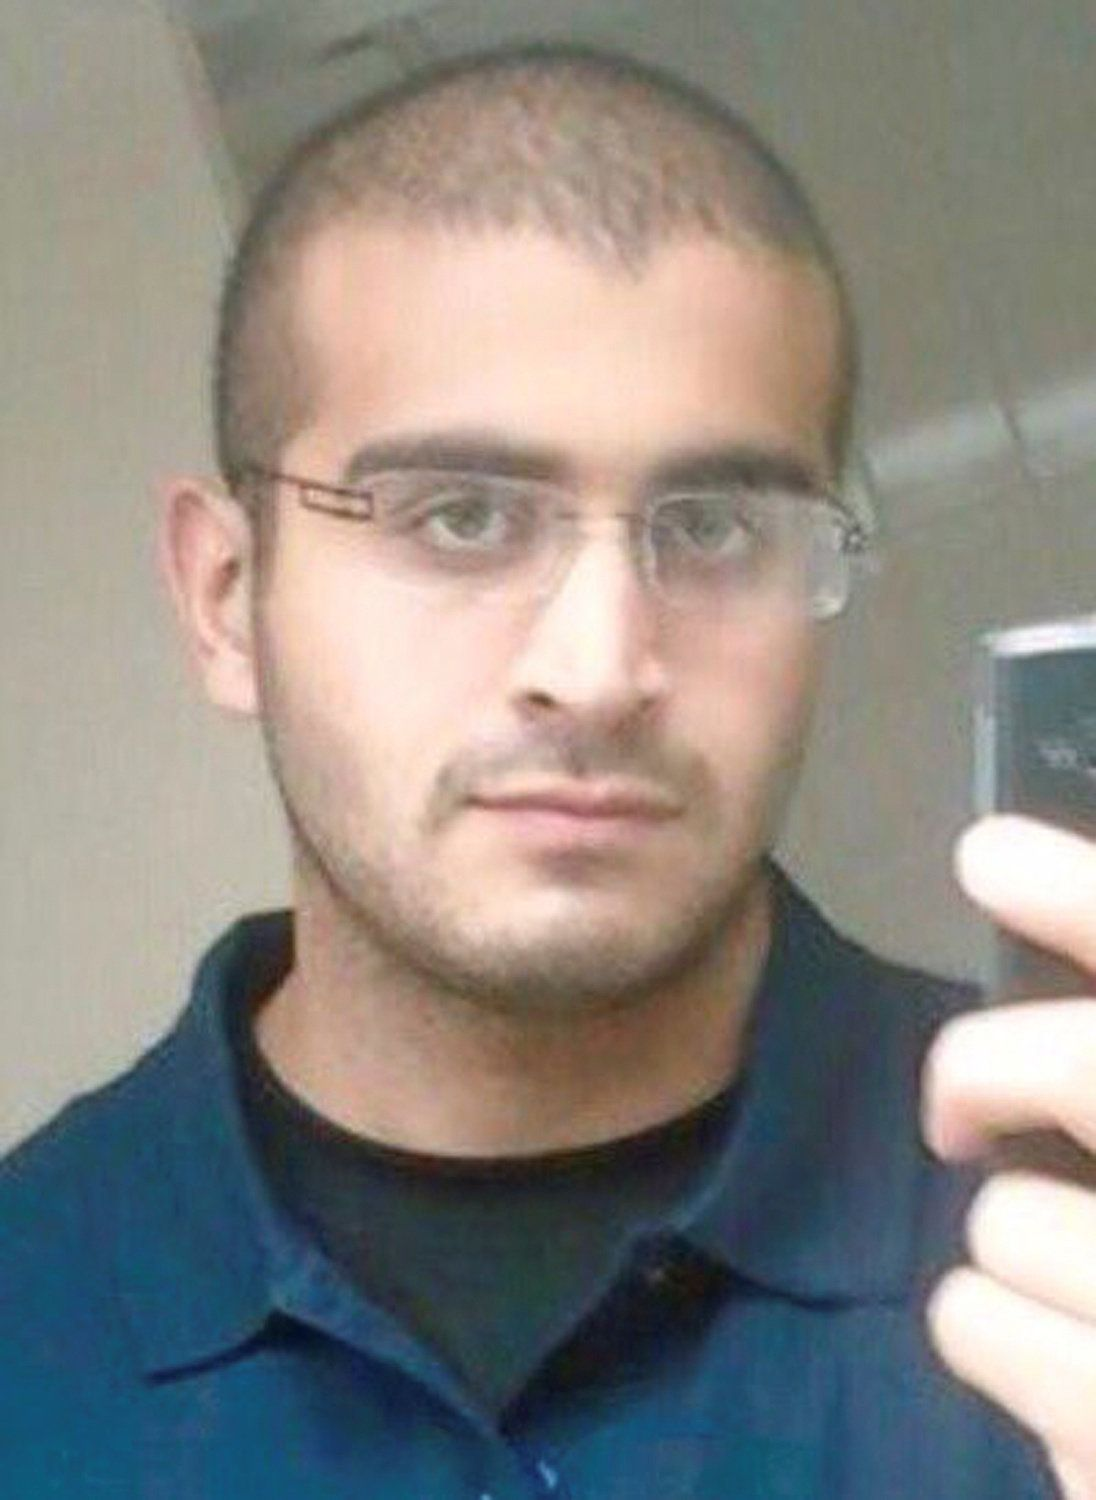 Orlando gay nightclub mass shooting suspect Omar Mateen, 29 is shown in this undated photo.  Orlando Police Department/Handout via Reuter   ATTENTION EDITORS - THIS IMAGE WAS PROVIDED BY A THIRD PARTY. EDITORIAL USE ONLY.       TPX IMAGES OF THE DAY